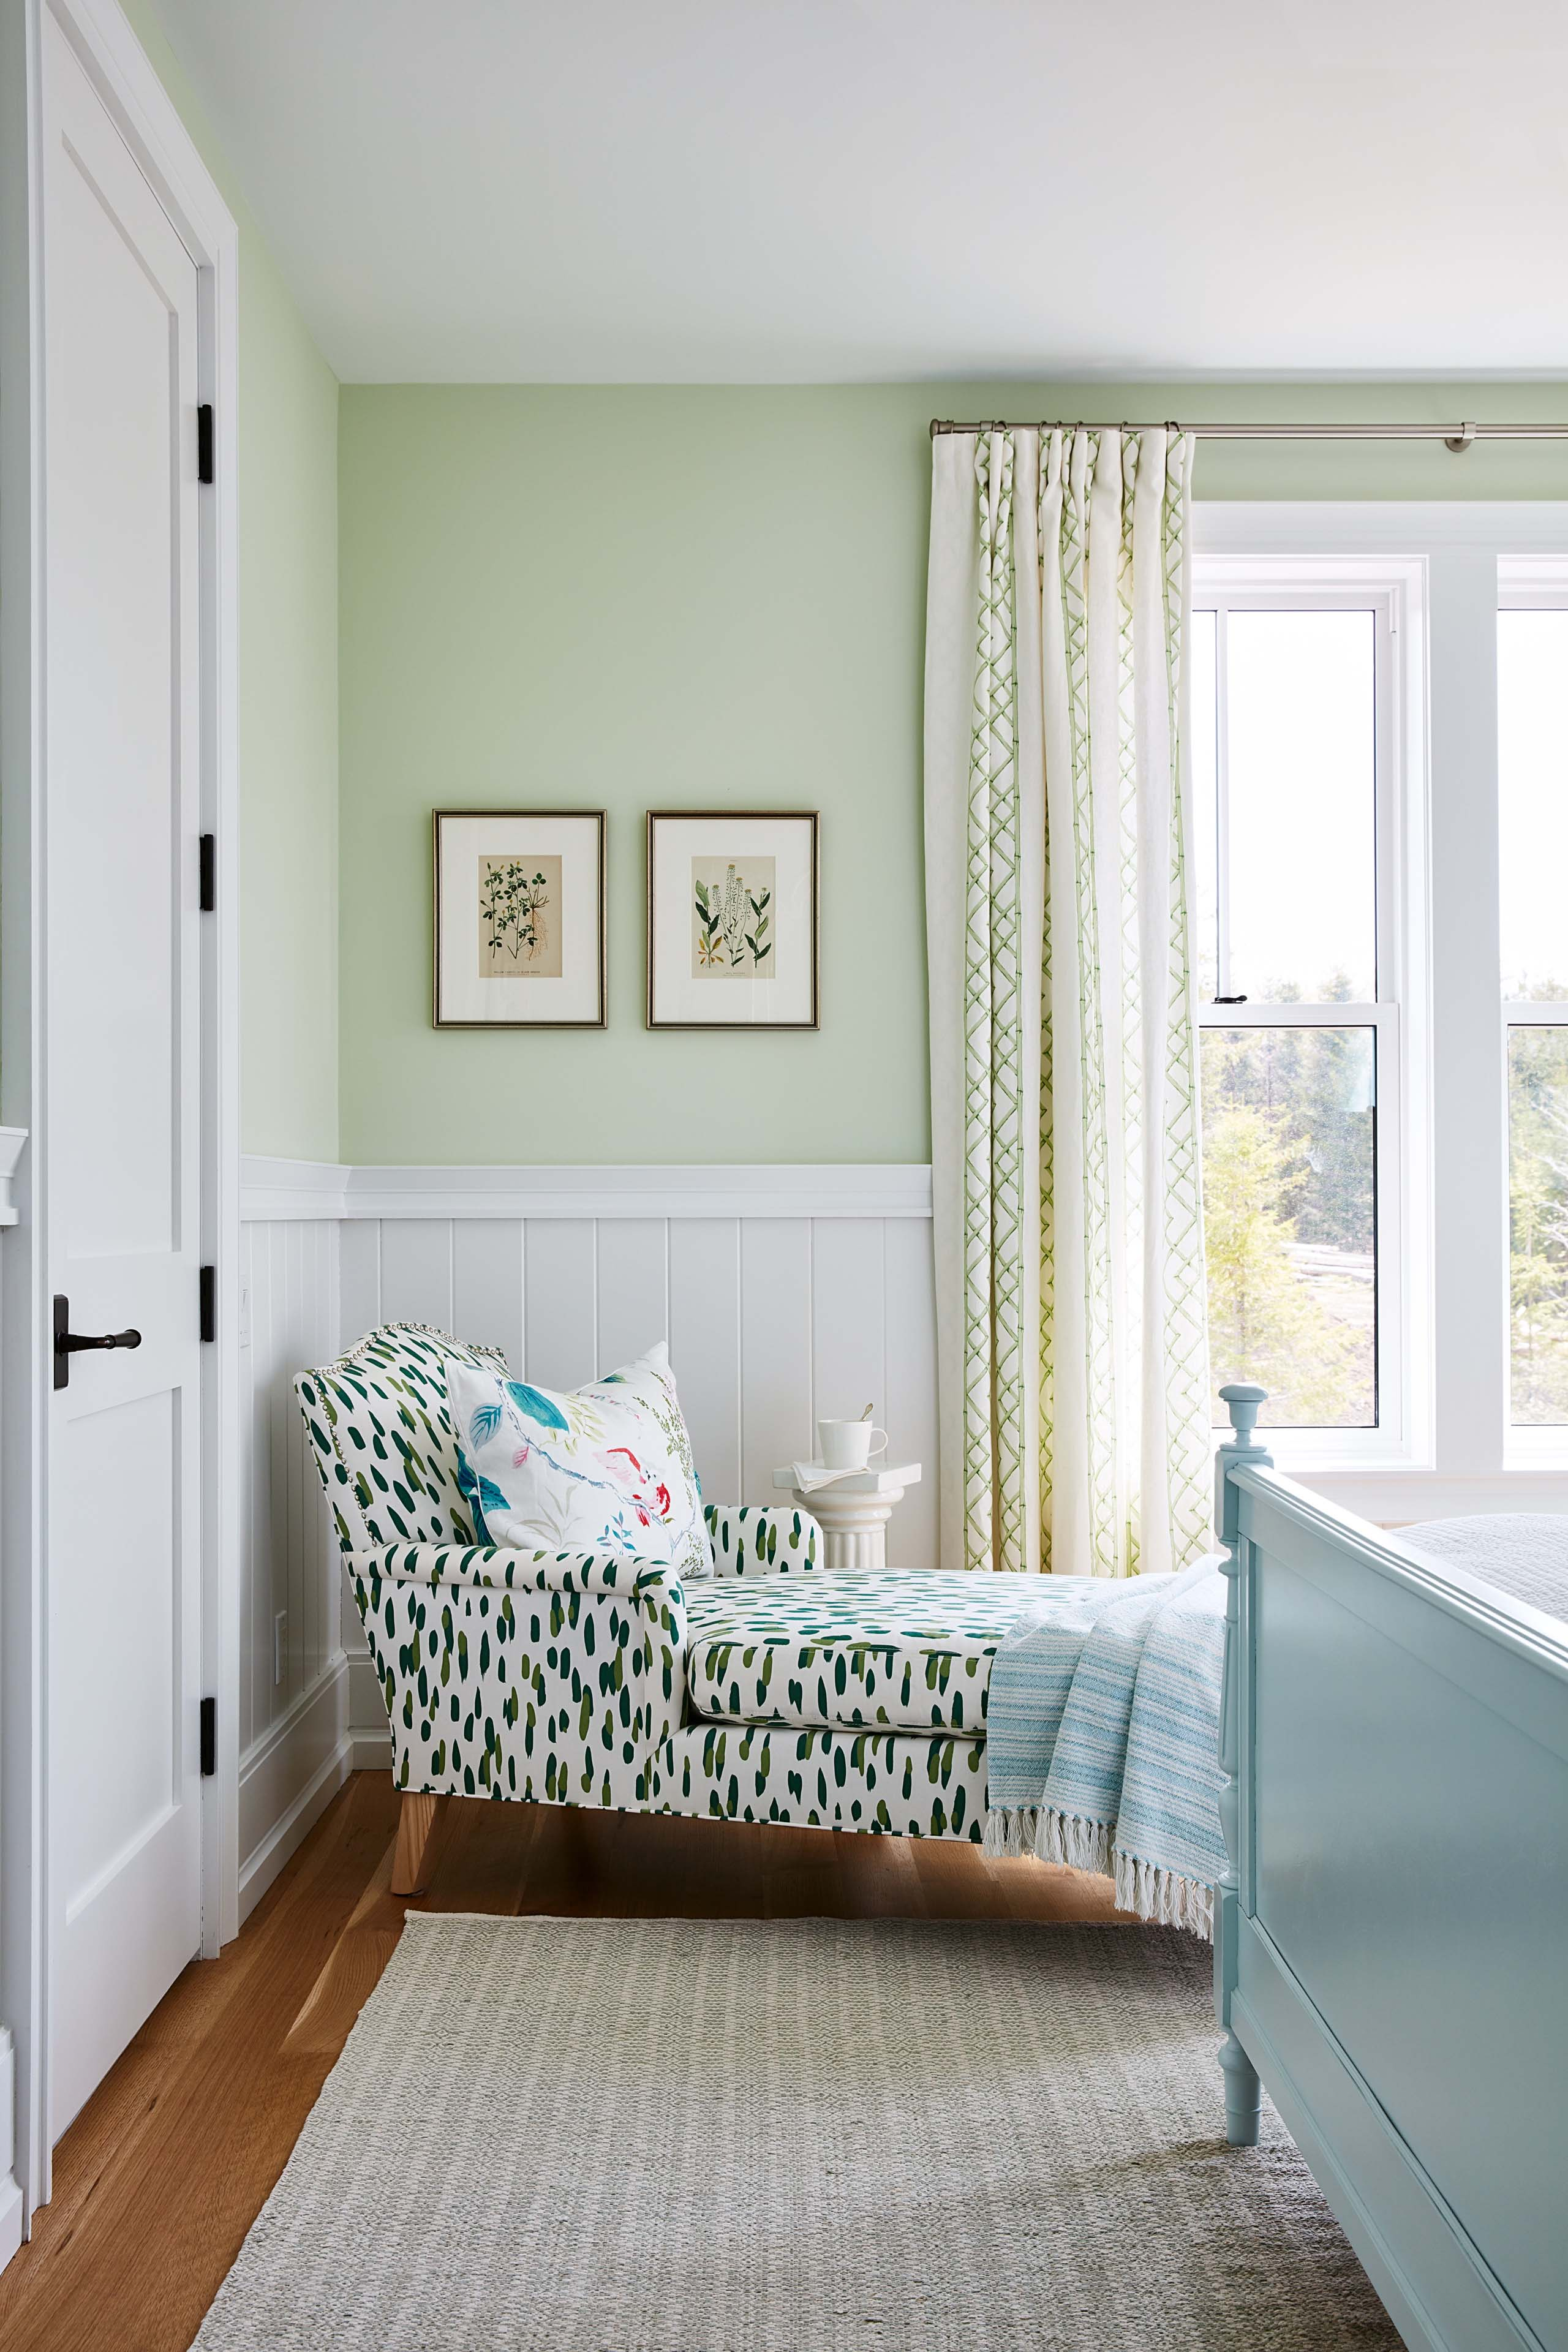 Light green walls in cottage style bedroom with long chaise. #SarahRichardson #cottagedecor #lightgreenwalls